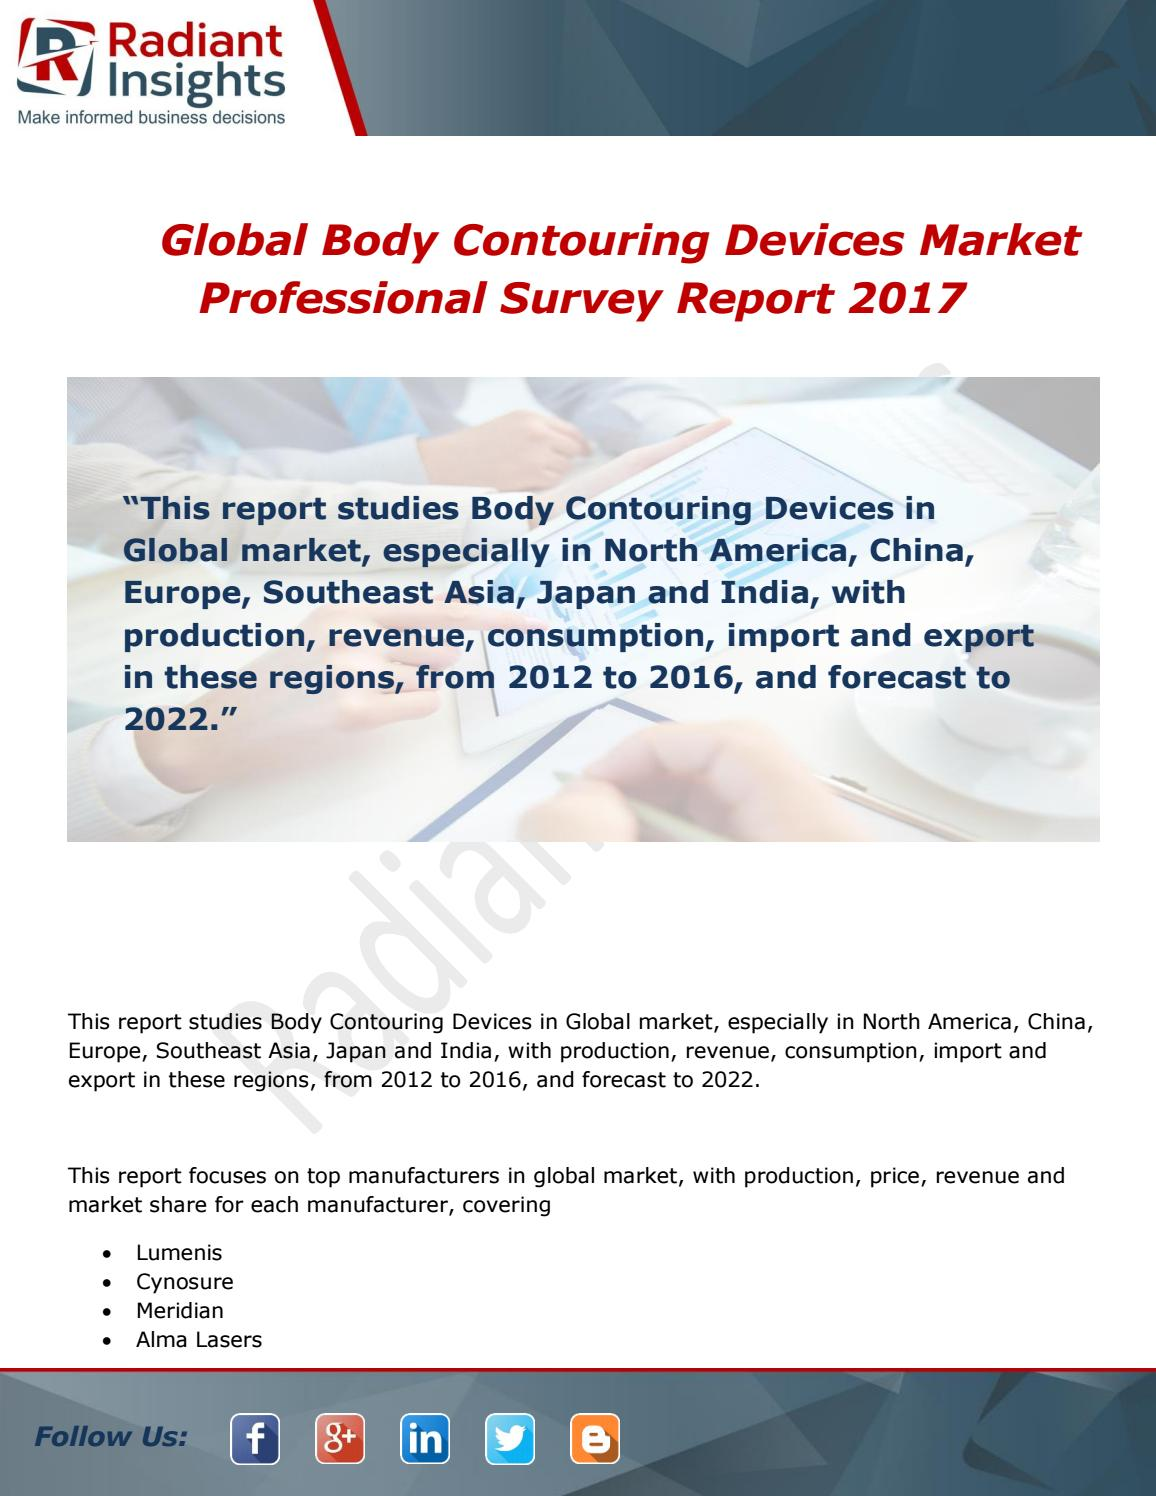 Body Contouring Devices Global Market Professional Survey